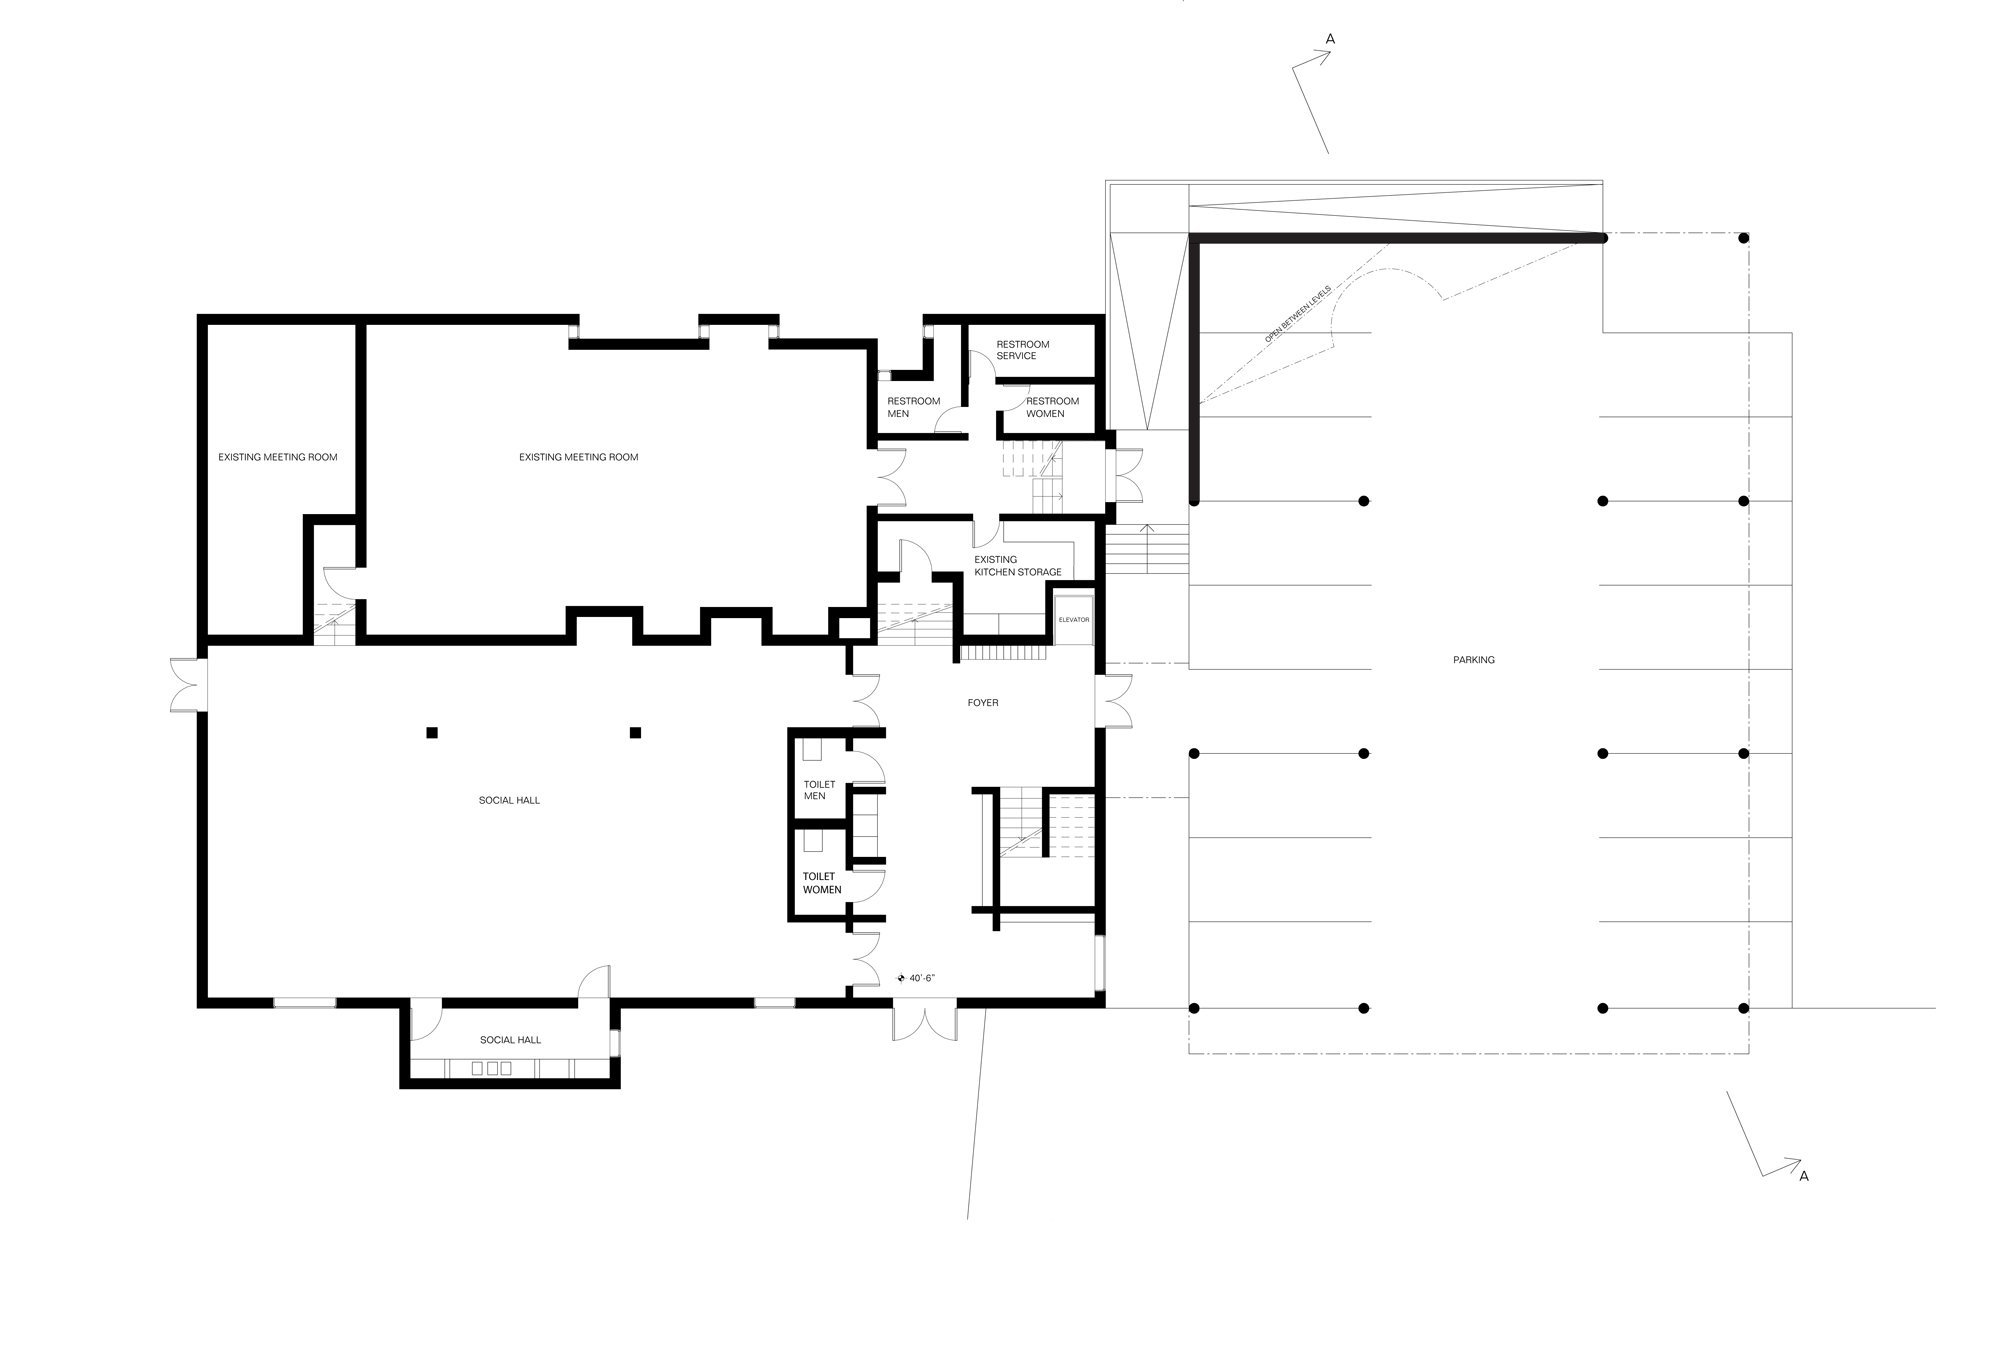 House Layout Design As Per Vastu Gallery Of Room For Prayer Mosque And Cultural Center